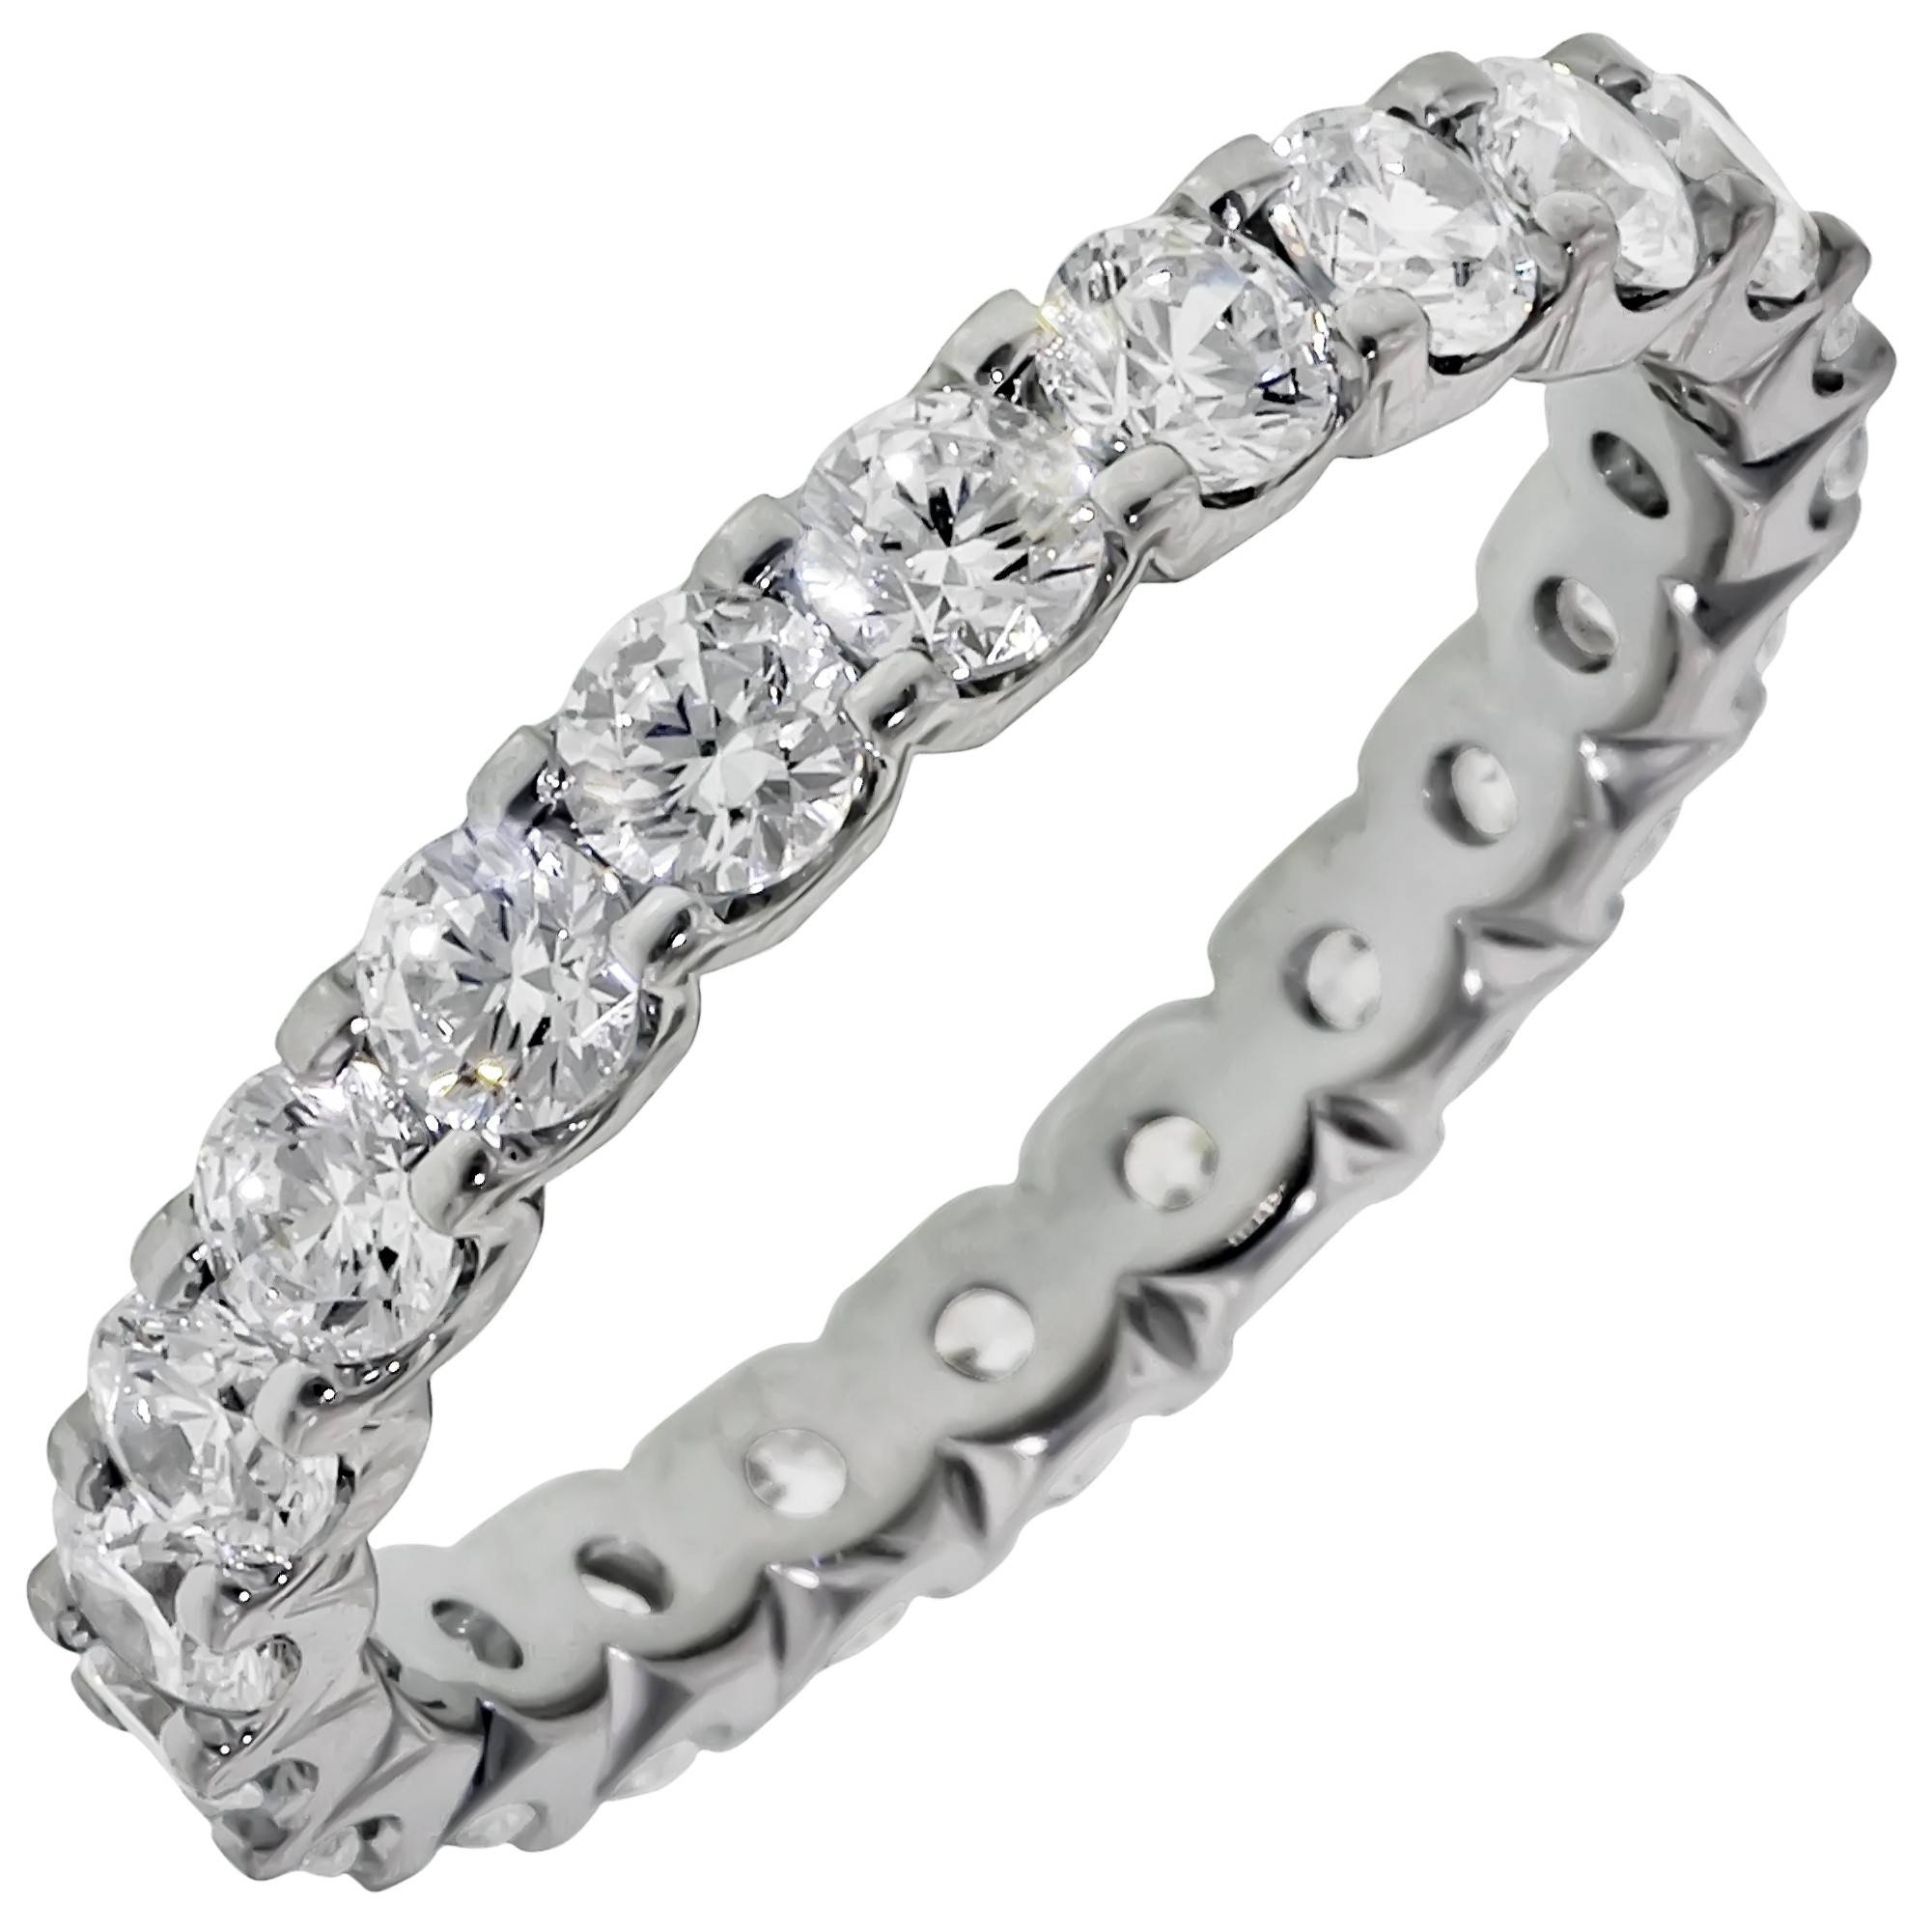 2020 Latest Platinum Eternity Wedding Bands